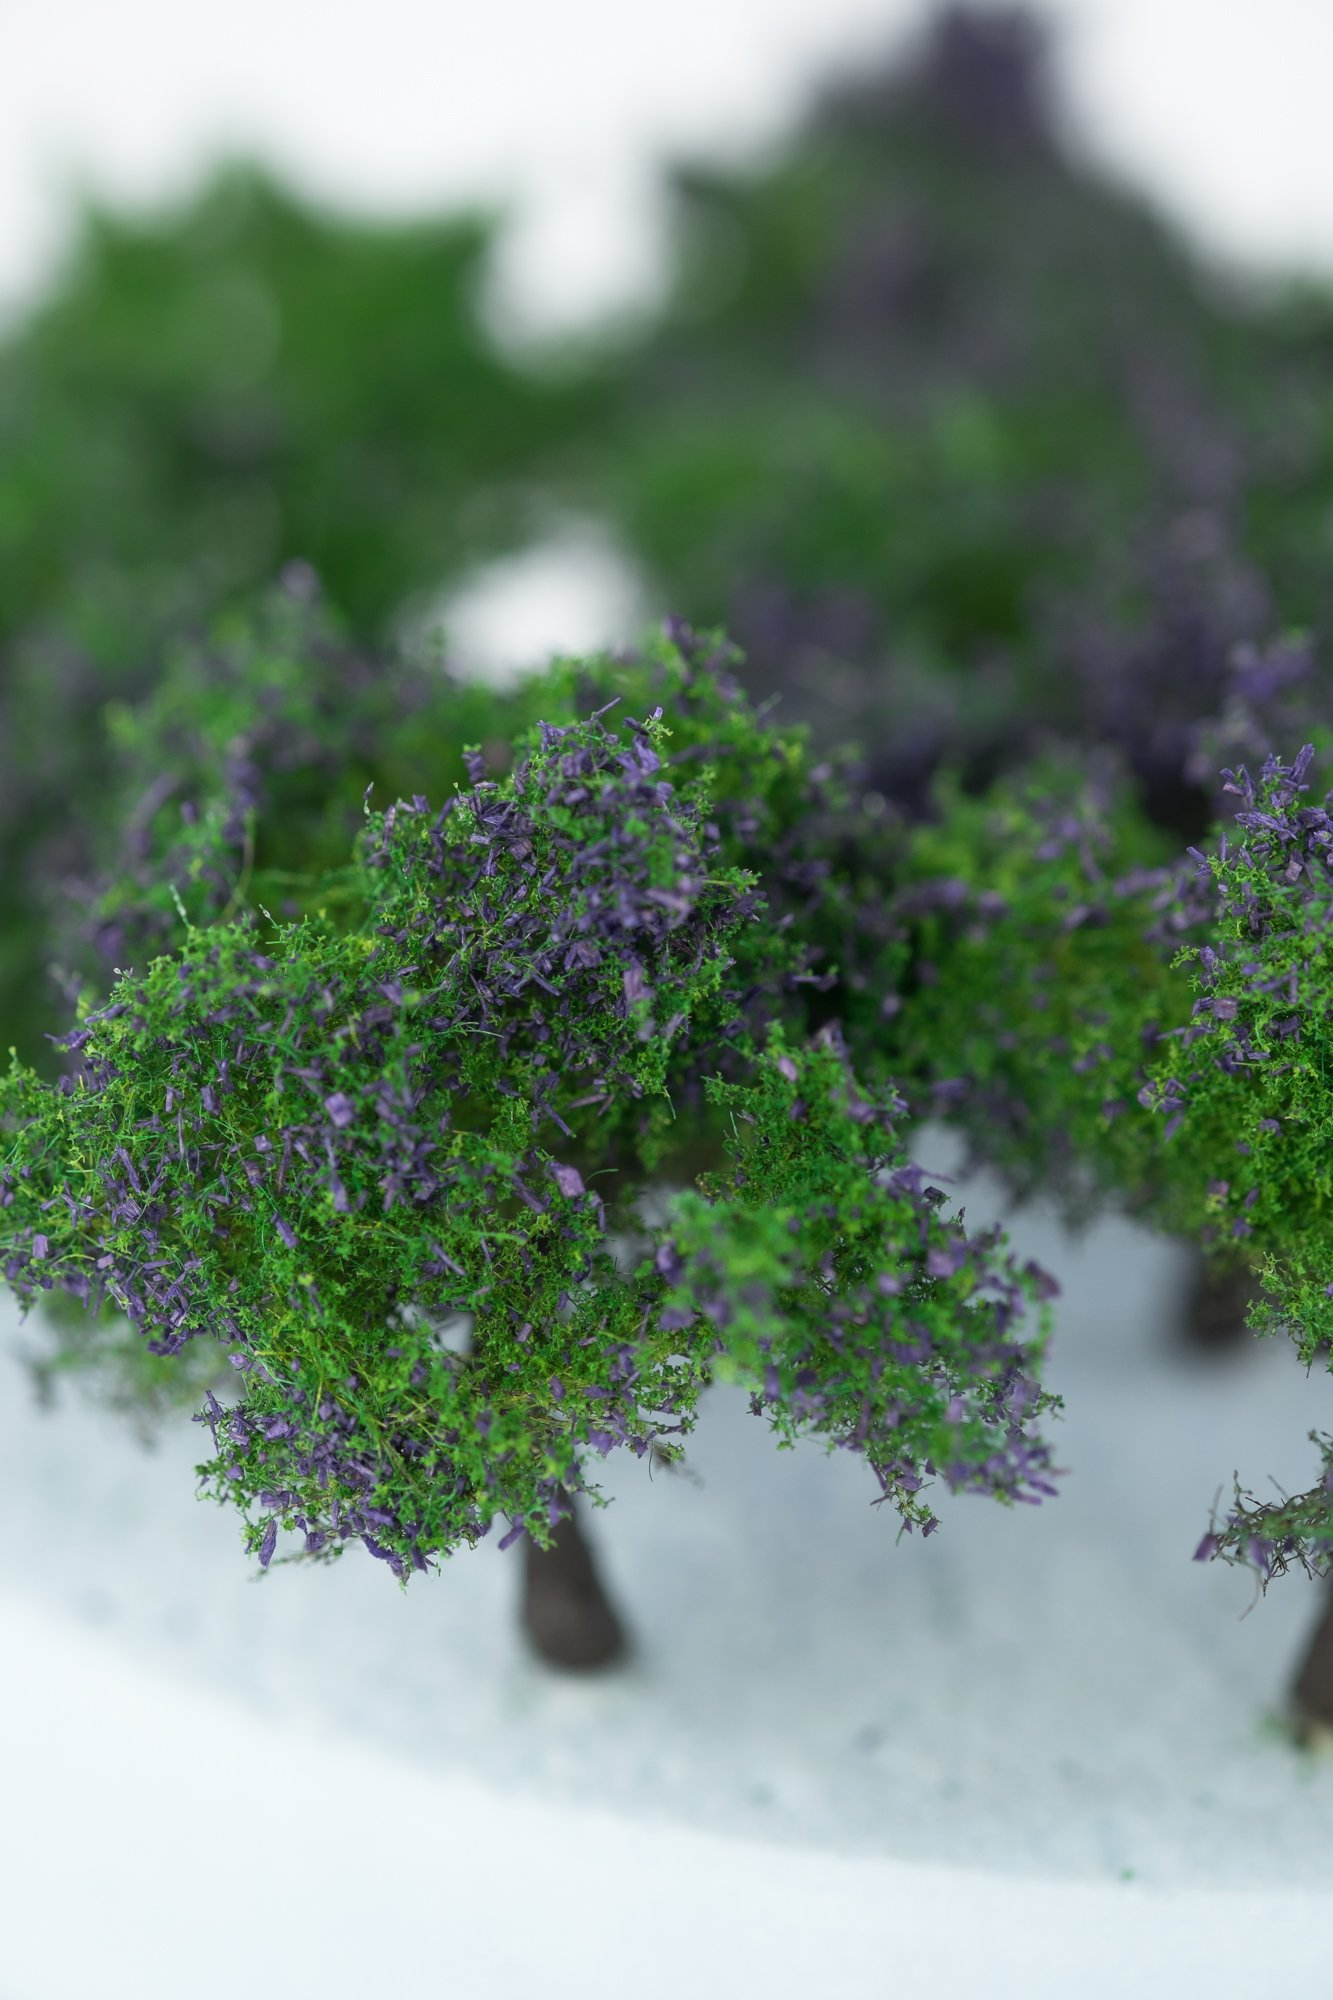 Closeup of foliage on regular purple model bushes. Made from high quality model supplies by Primo Models.